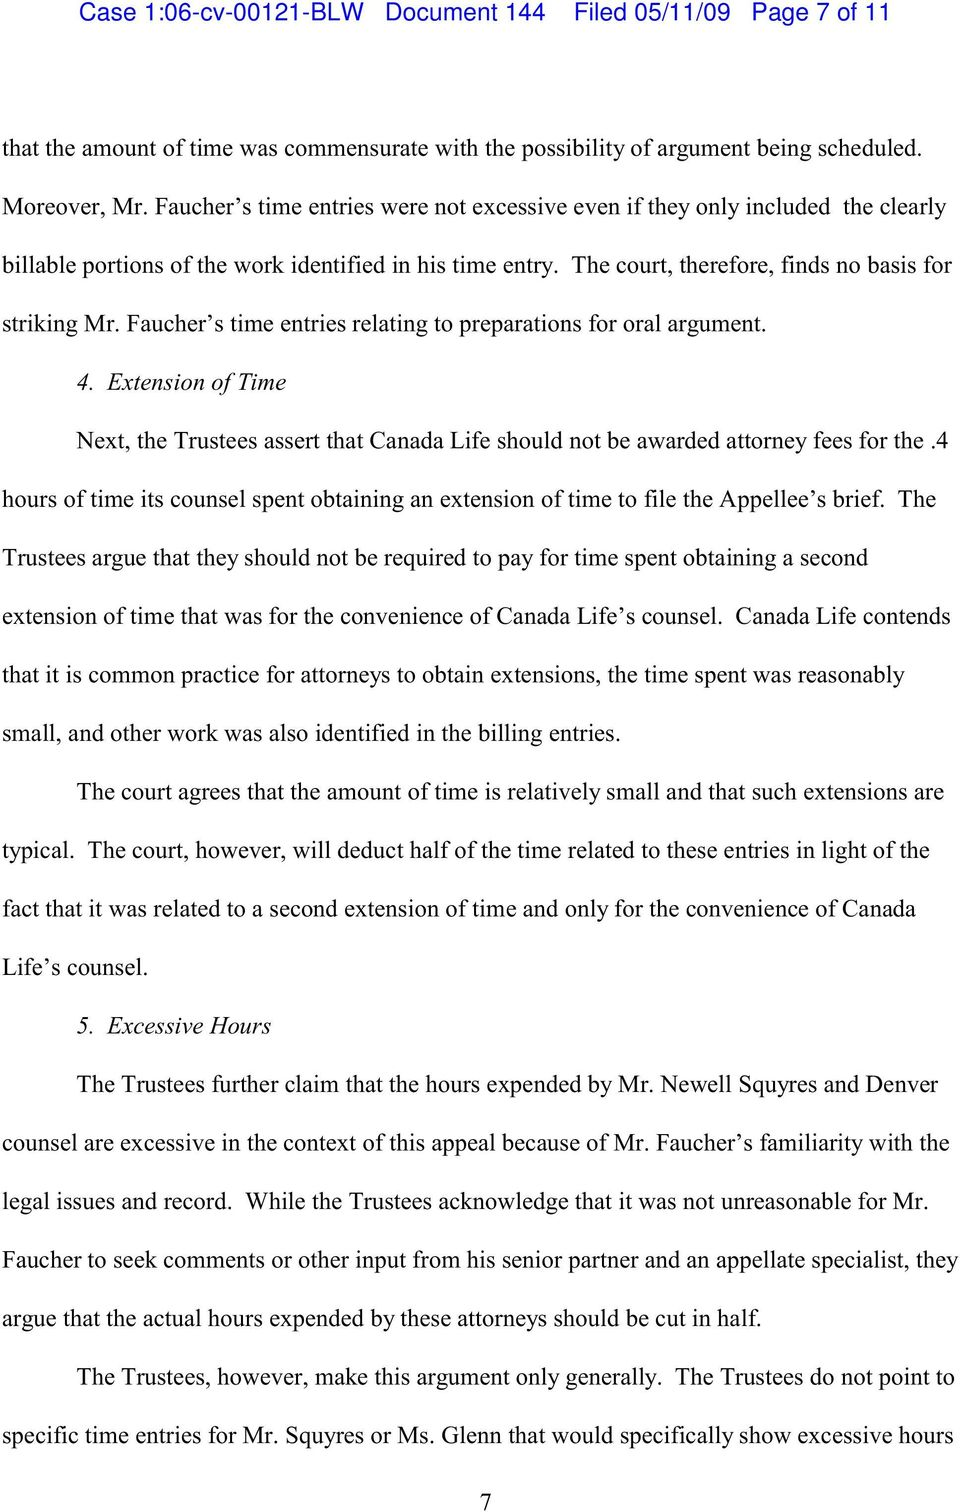 Faucher s time entries relating to preparations for oral argument. 4. Extension of Time Next, the Trustees assert that Canada Life should not be awarded attorney fees for the.